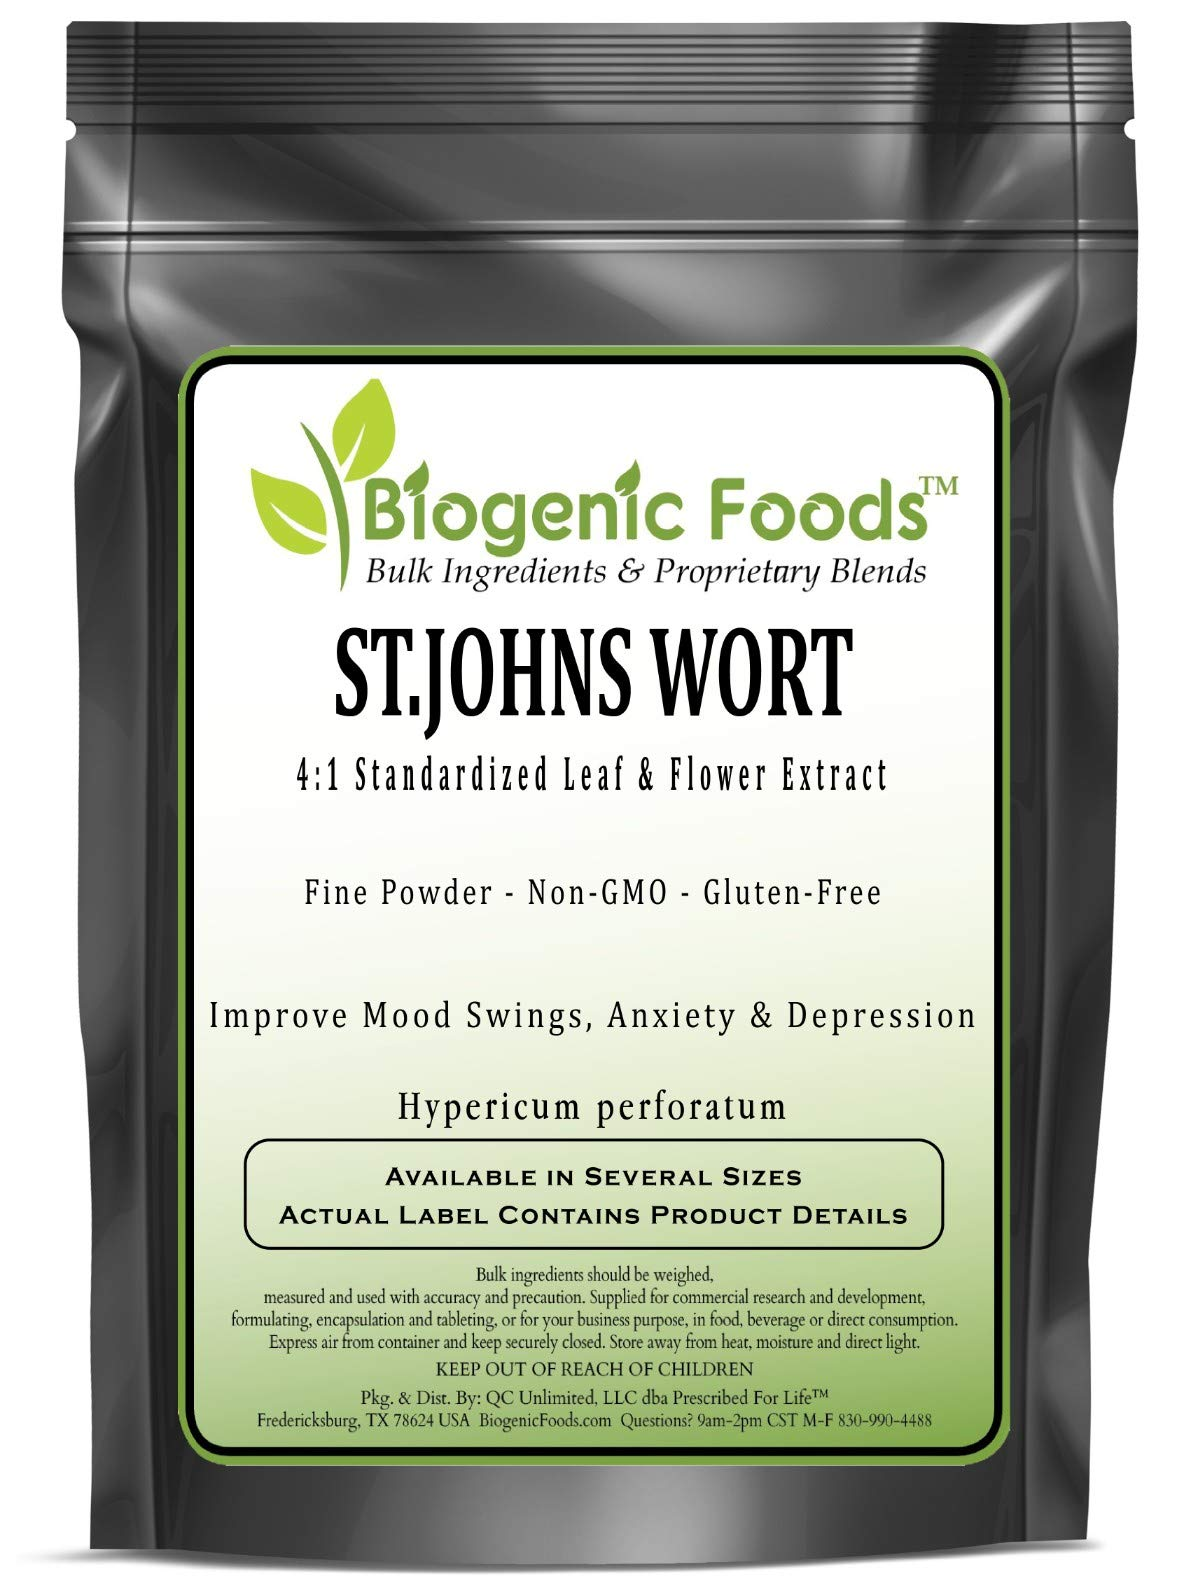 St.Johns Wort - 4:1 Standardized Leaf & Flower Fine Powder Extract (Hypericum perforatum), 2 kg